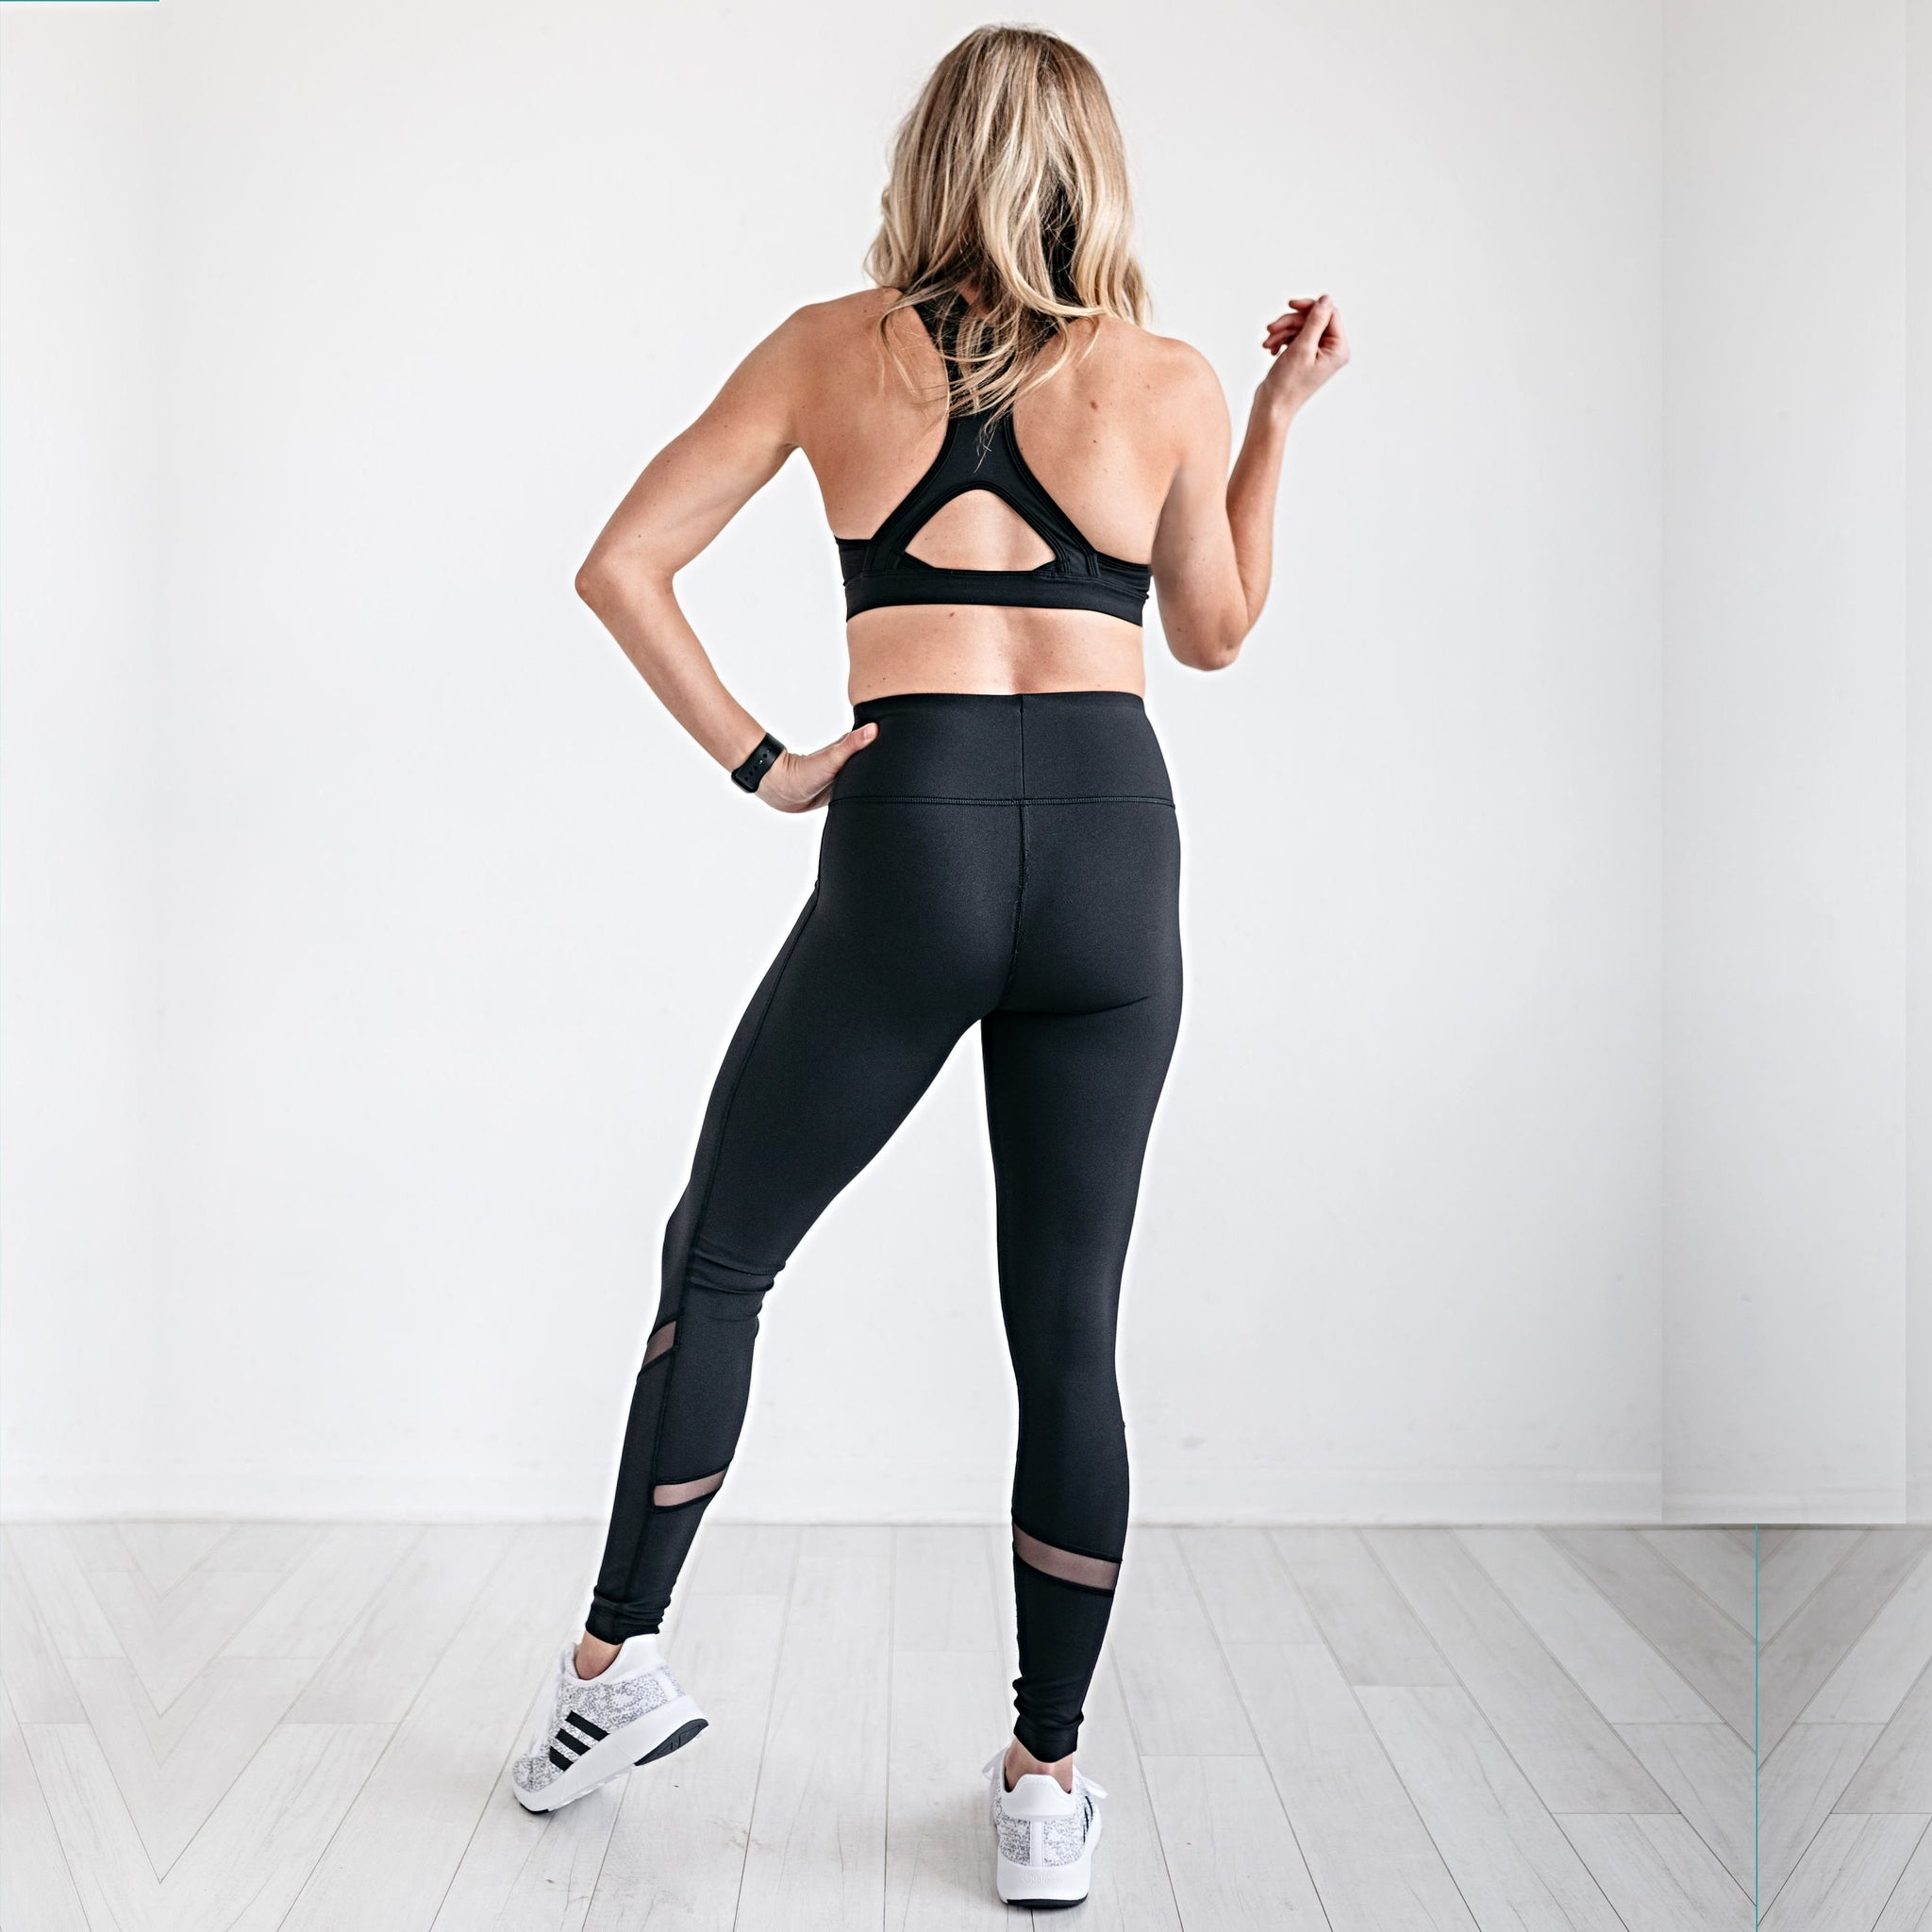 Shape It Up! Leggings Legging Sew Sew You